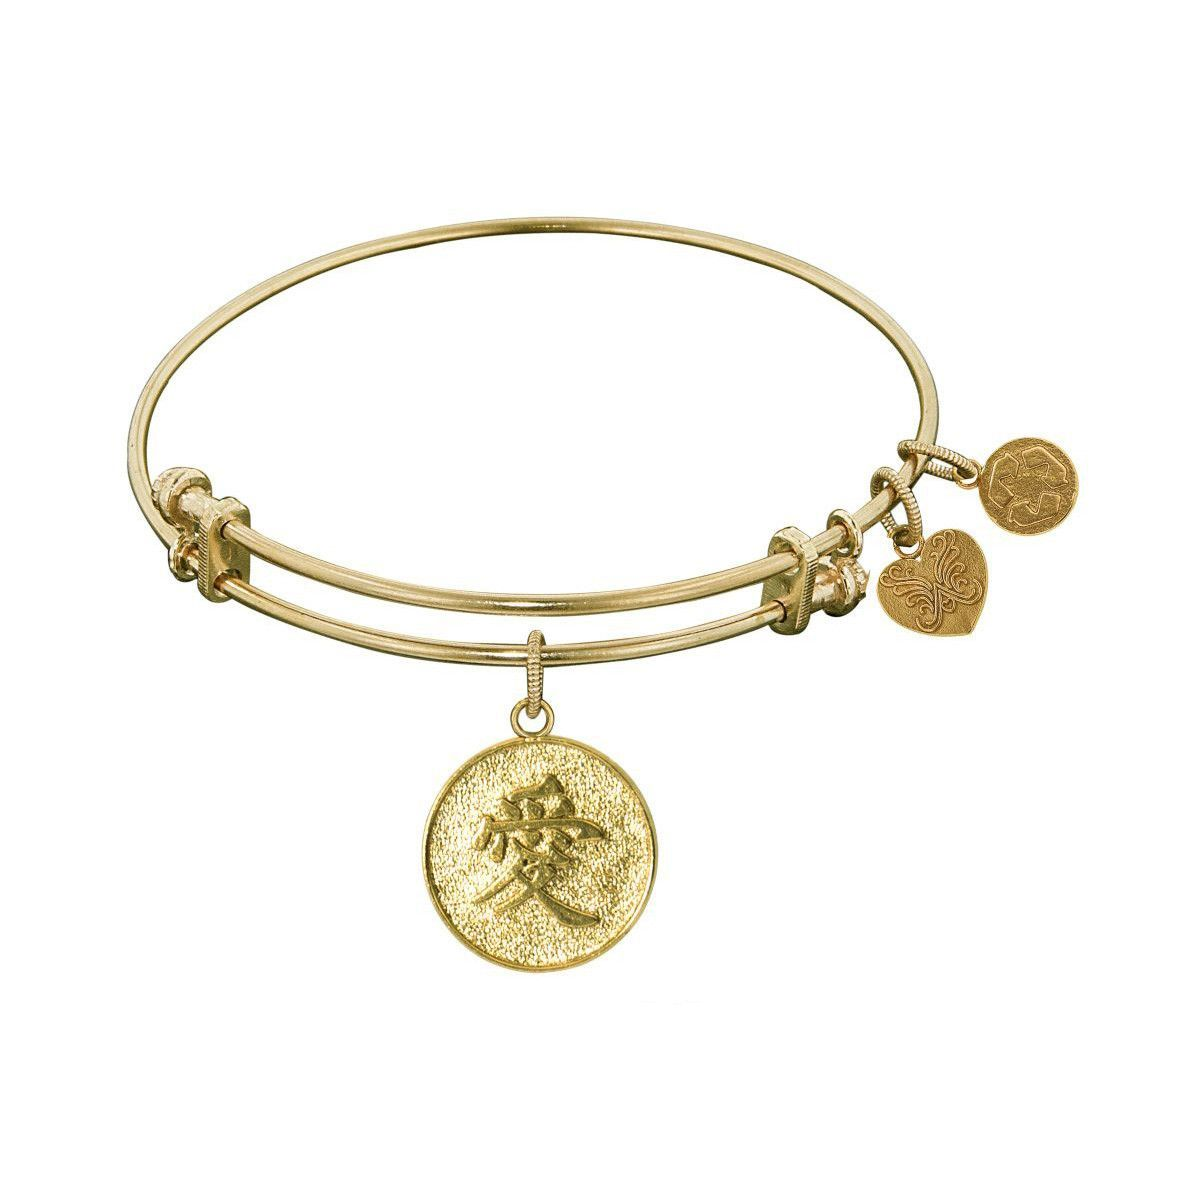 Non-Antique Stipple Finish Brass Chinese Love Angelica Bangle, 7.25 Inches Adjustable